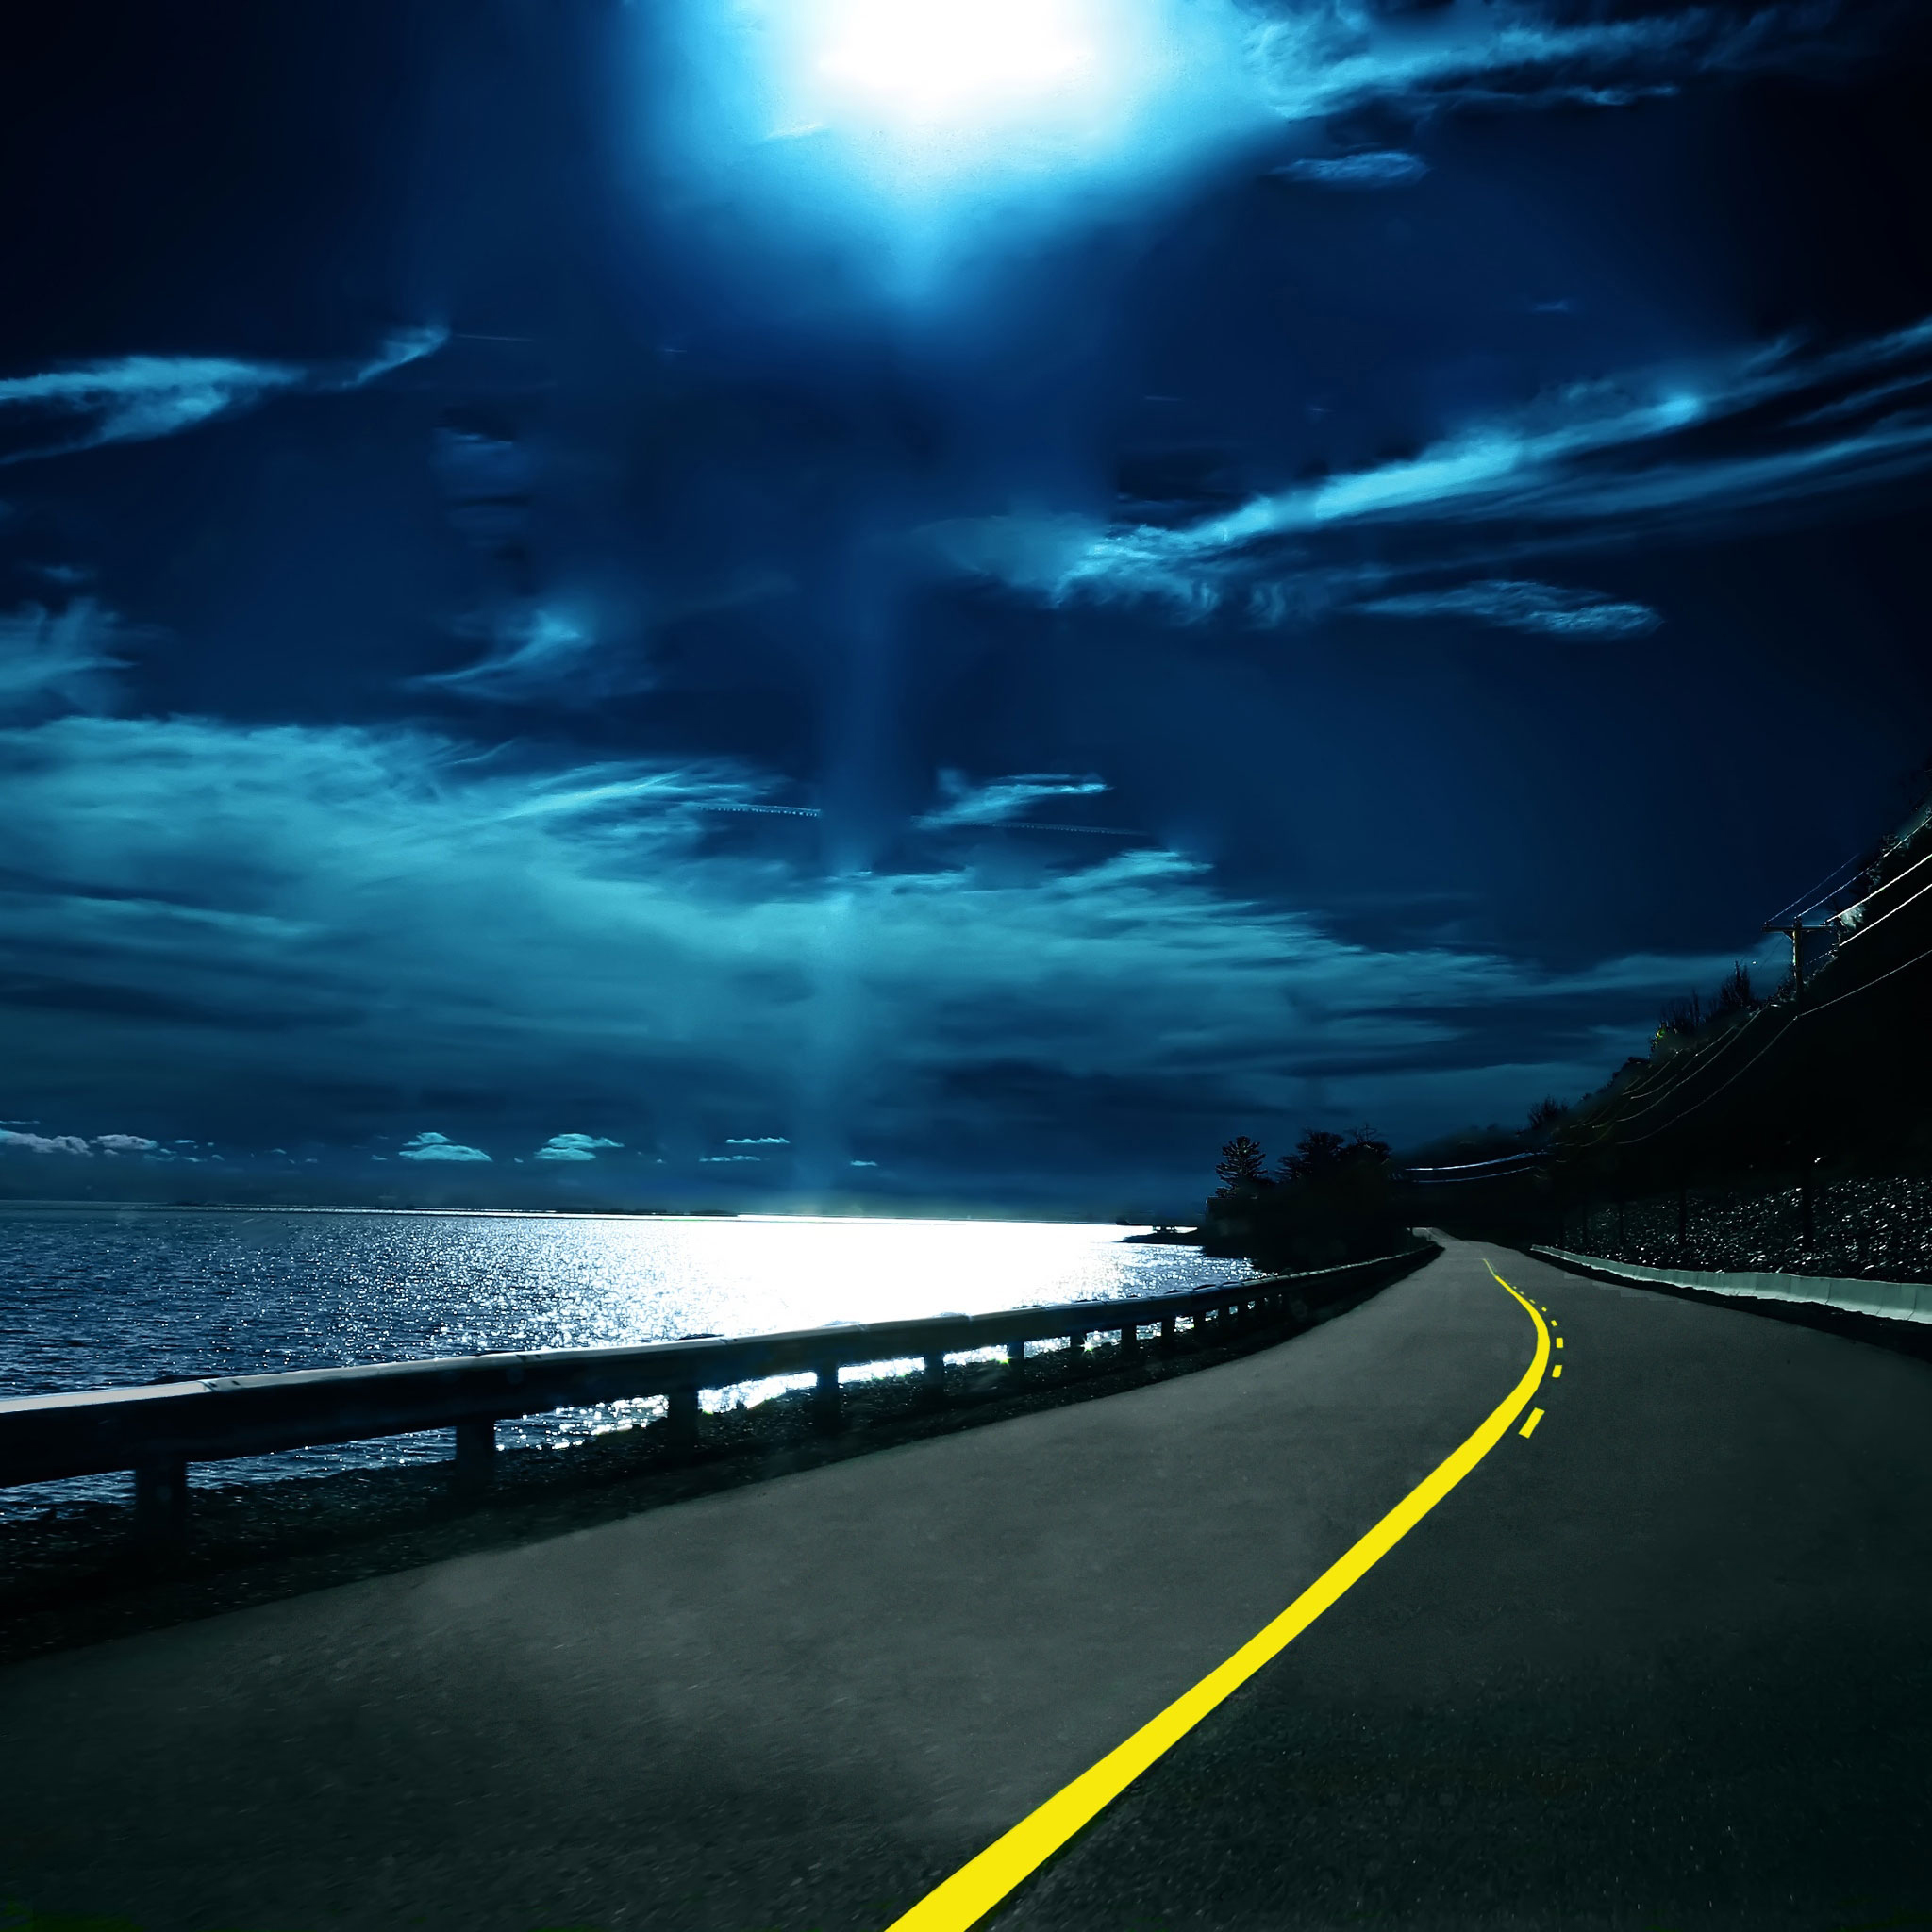 Highway Nights 3Wallpapers iPad Retina Highway Nights   iPad Retina